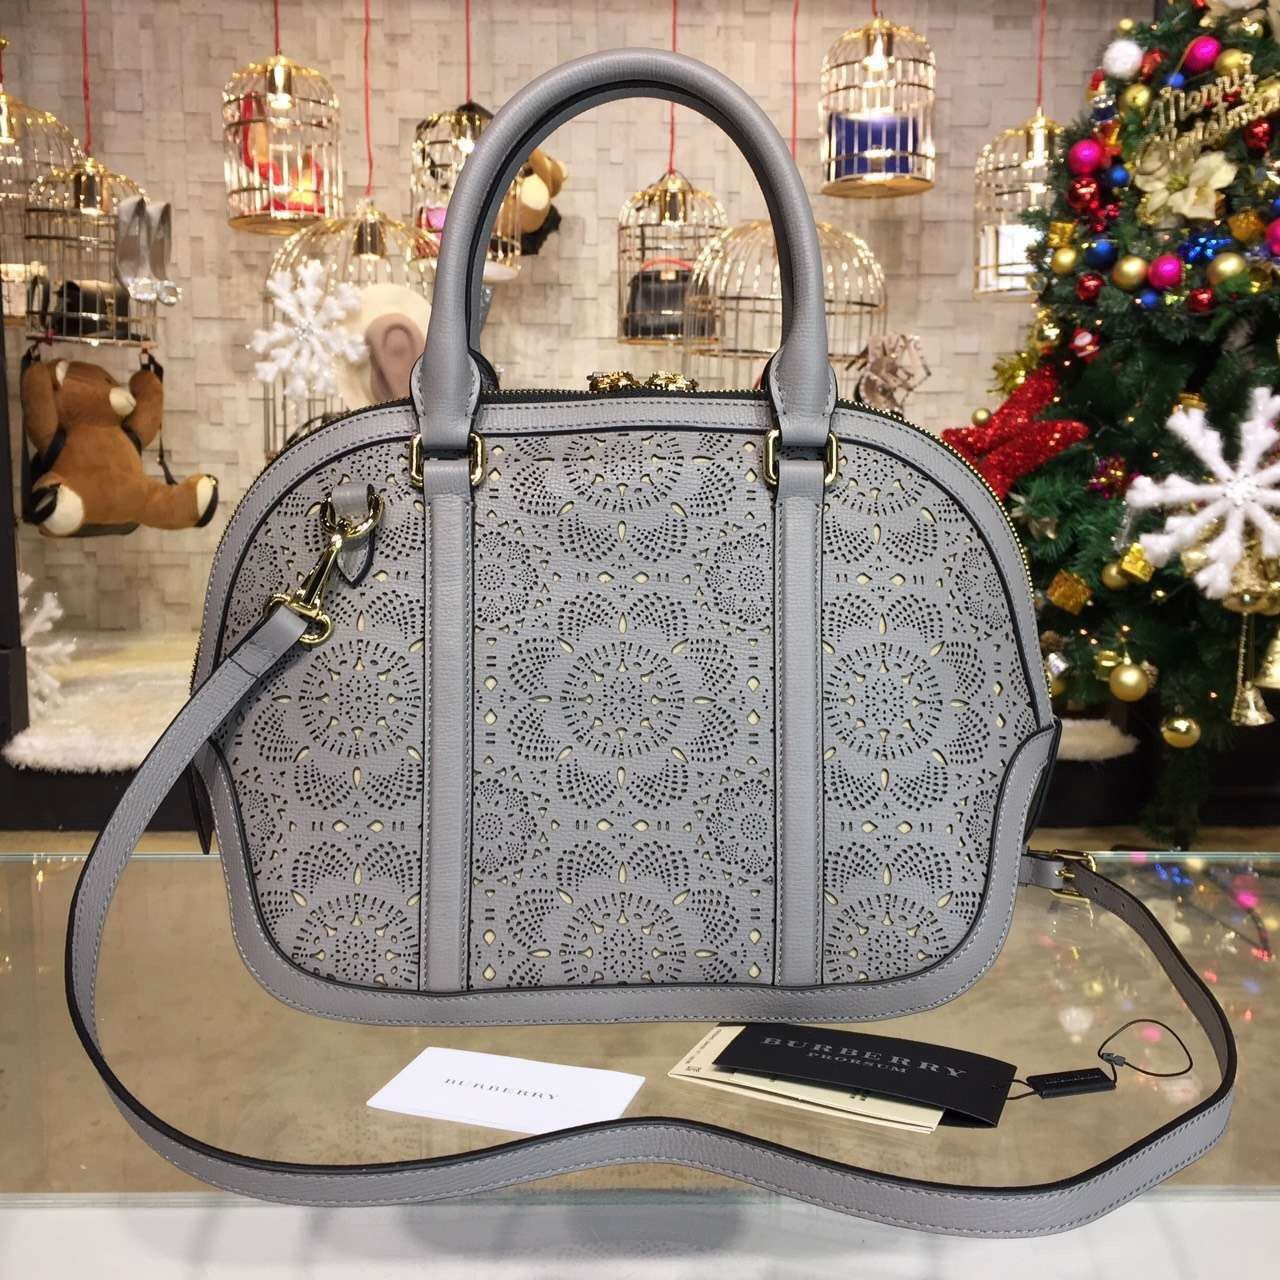 Burberry Small Orchard Bowling Bag In Lace Leather Grey S S 2016 ... 7e80241850222